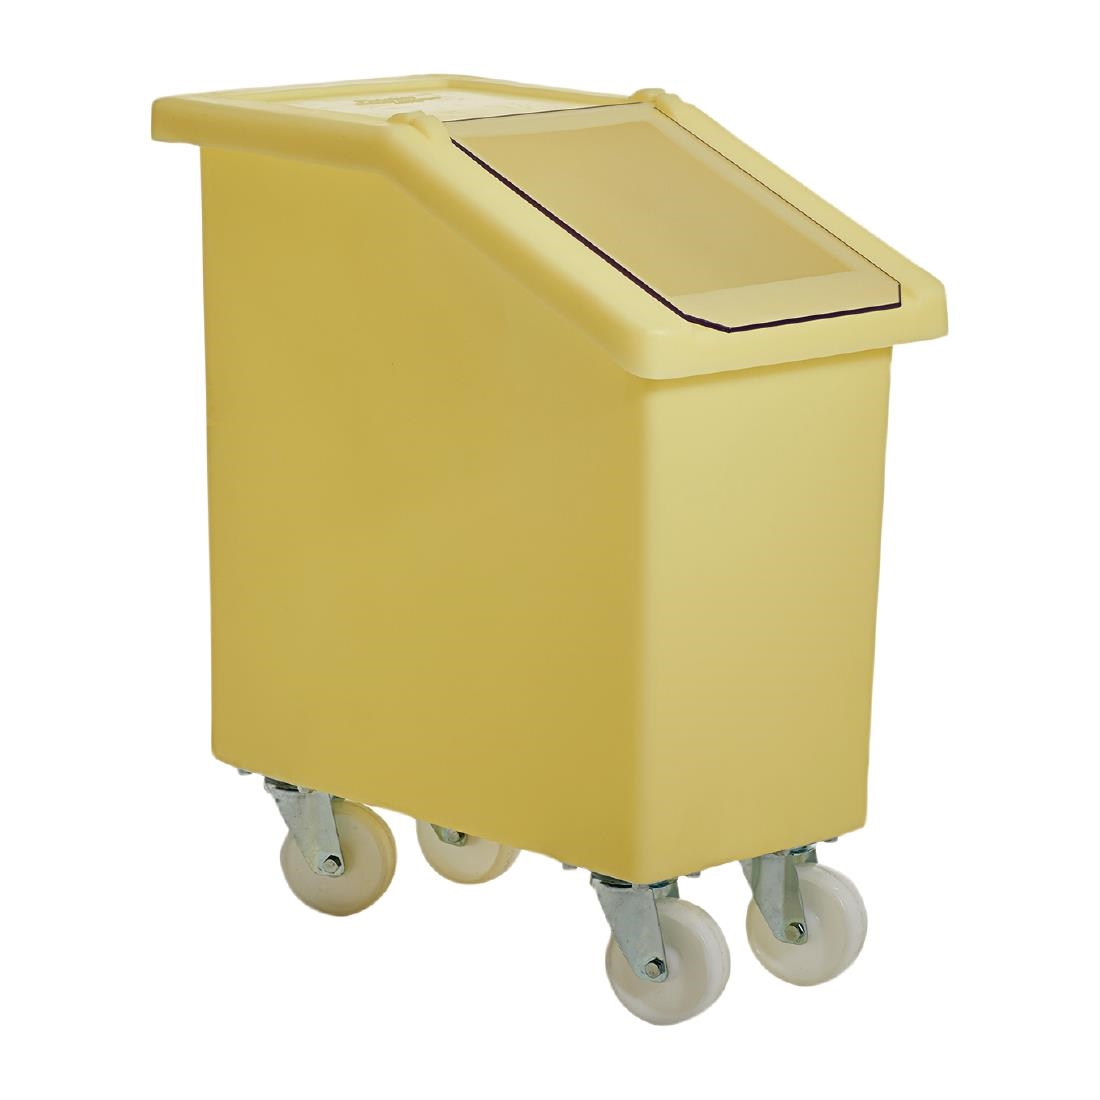 Image of Mobile Ingredient Bin 65Ltr Yellow